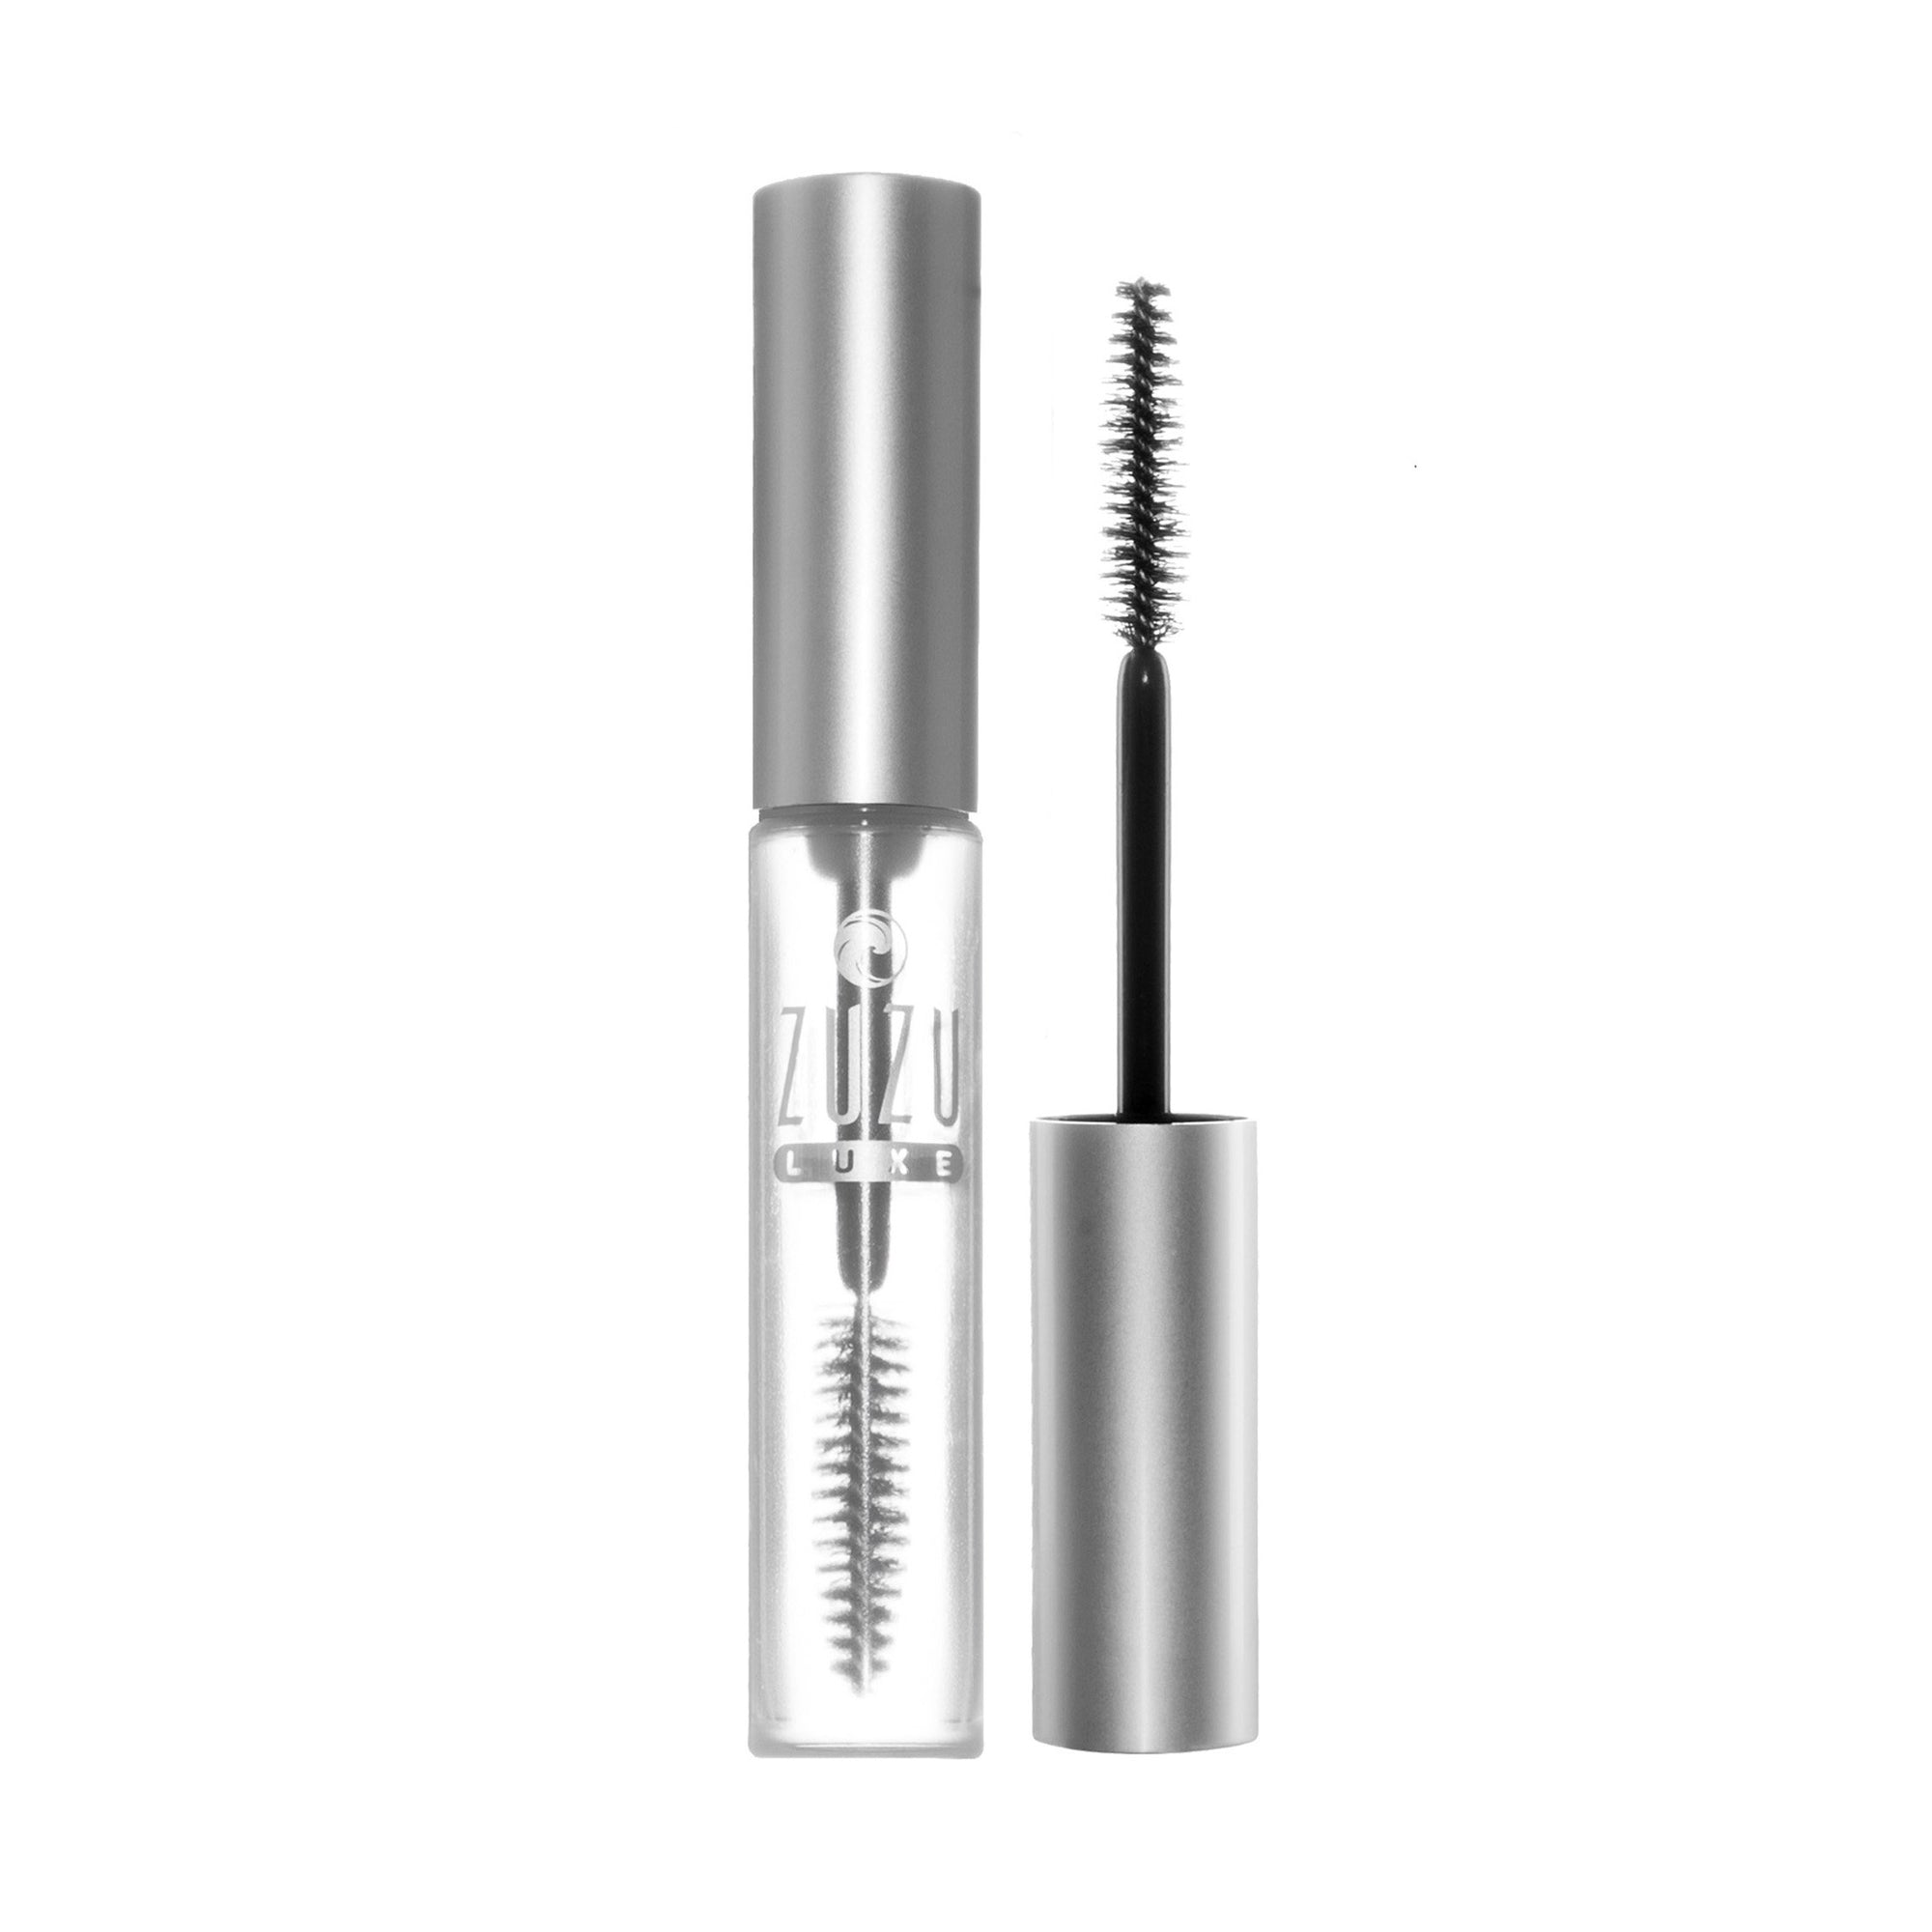 Beauty & Skin Care - Zuzu Luxe - Vegan Mascara, Clear